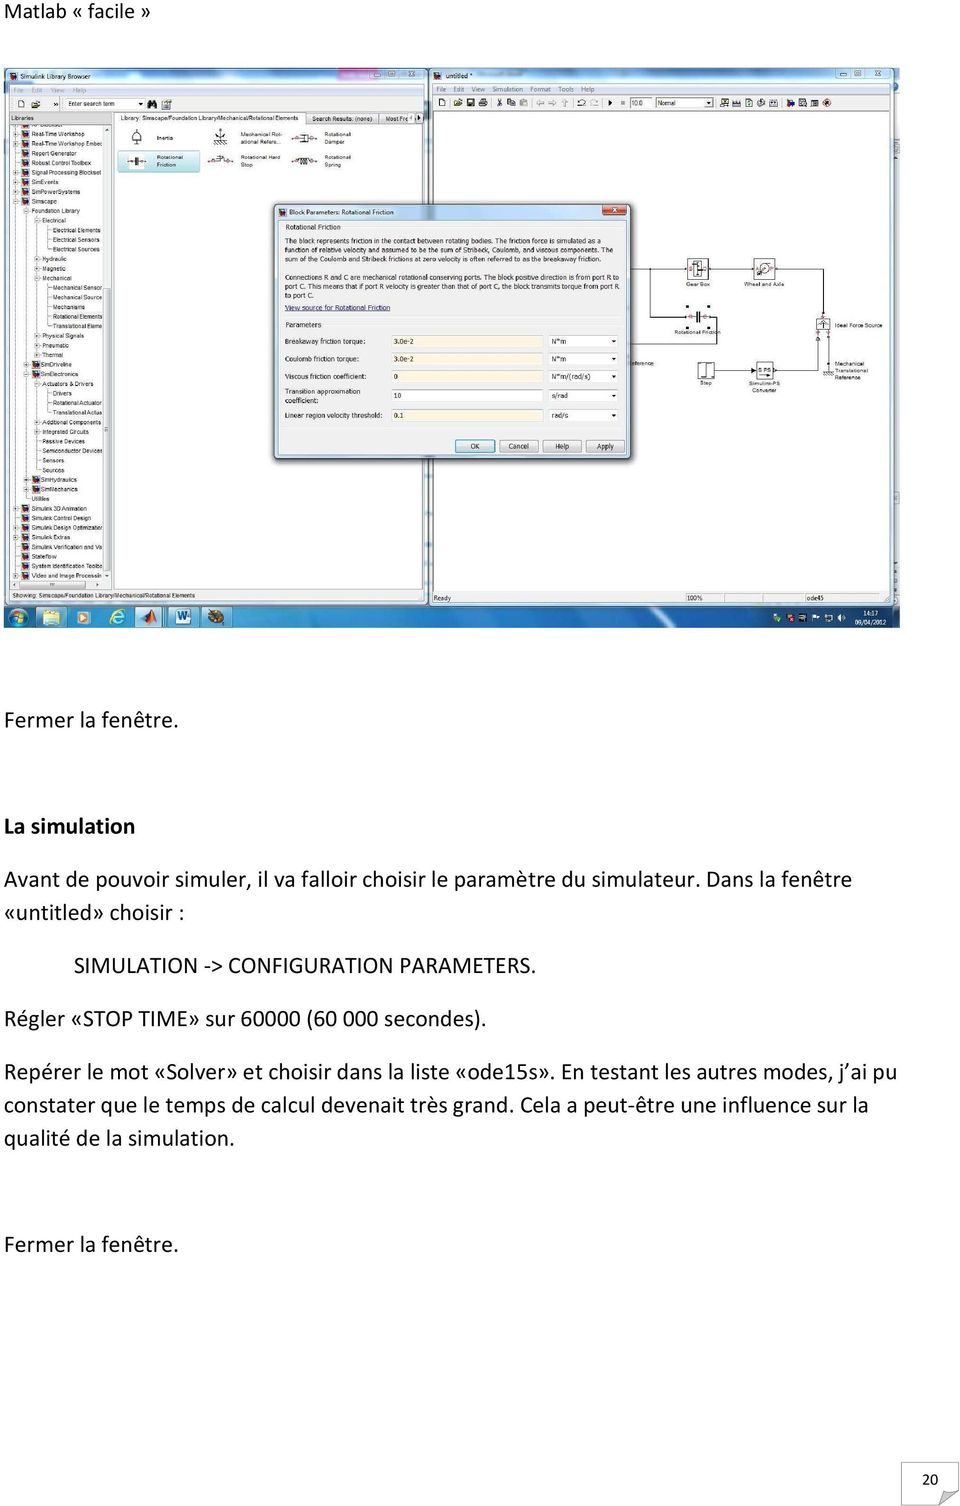 Guide matlab pour les d butants pdf for Liste chaine canalsat grand panorama pdf